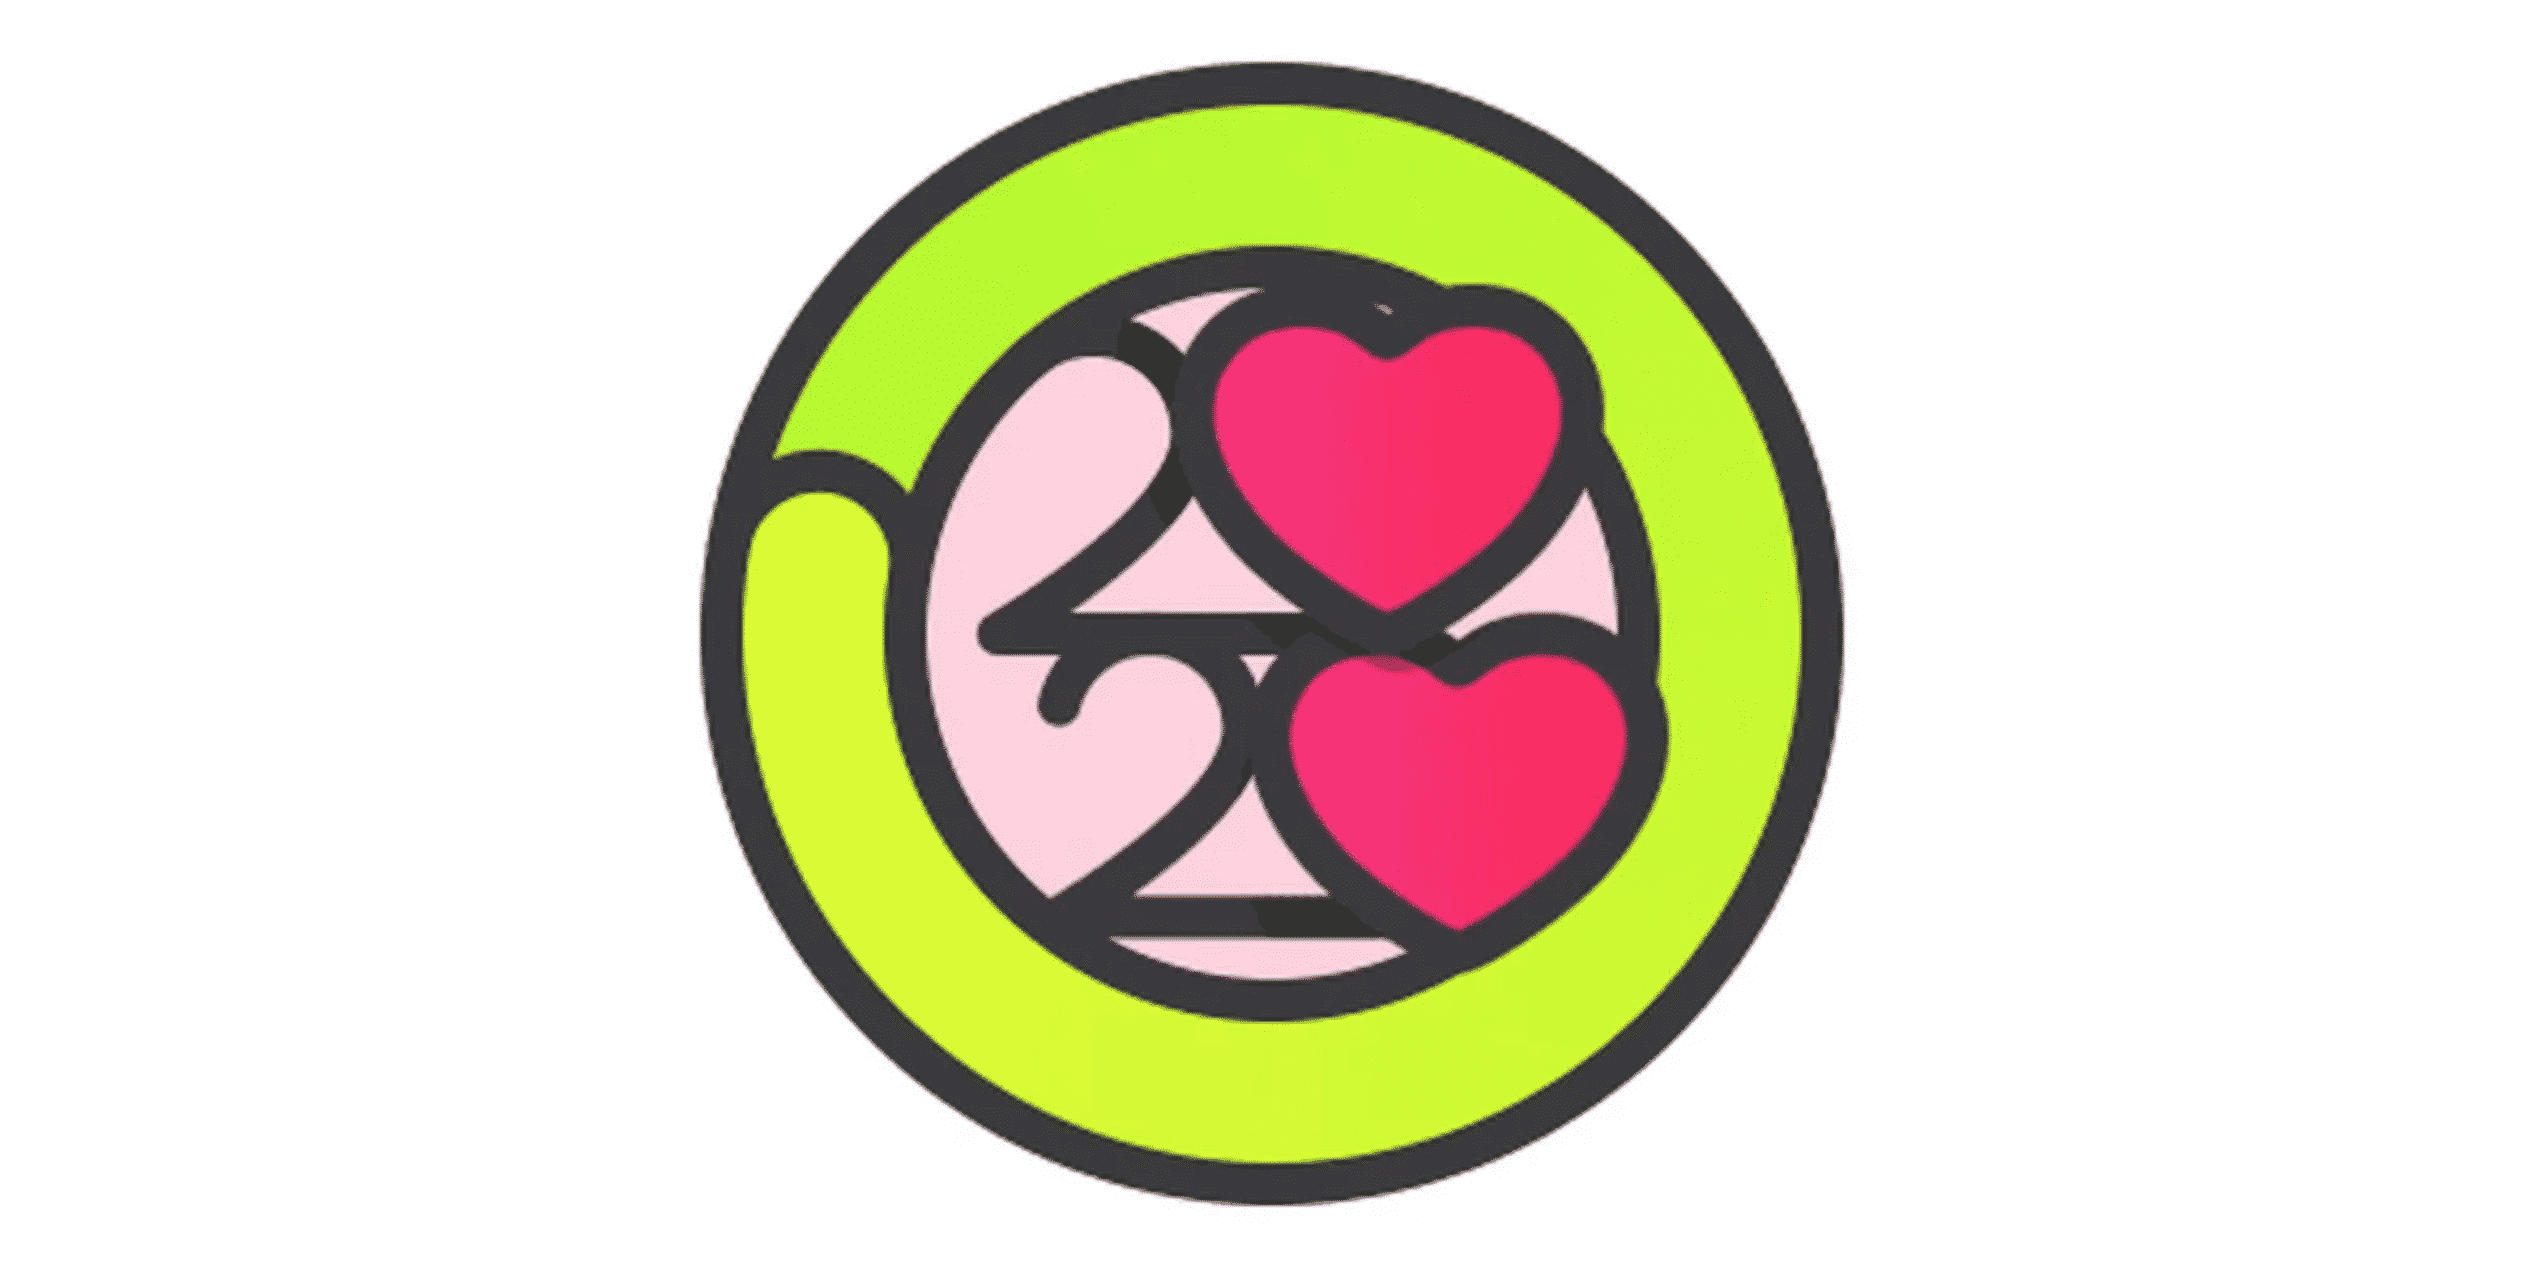 Newest Apple Watch Activity Challenge Geared Towards Heart Day